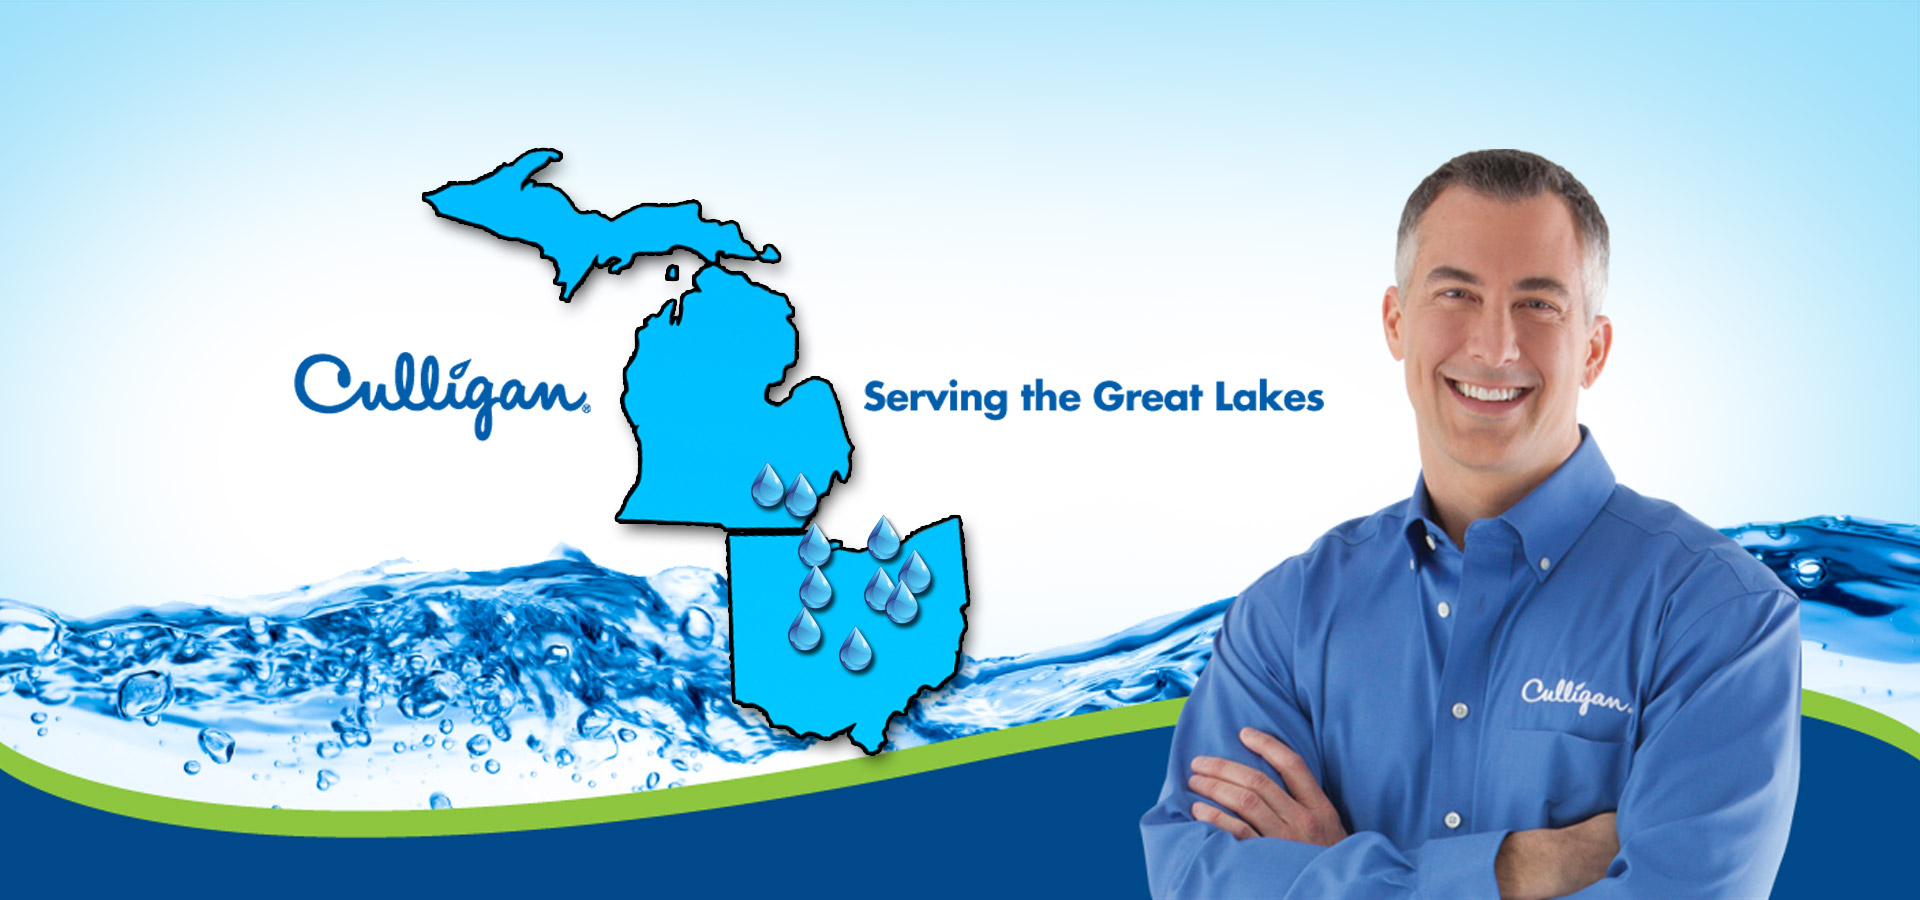 Culligan Water Of Great Lakes Water Purification Services